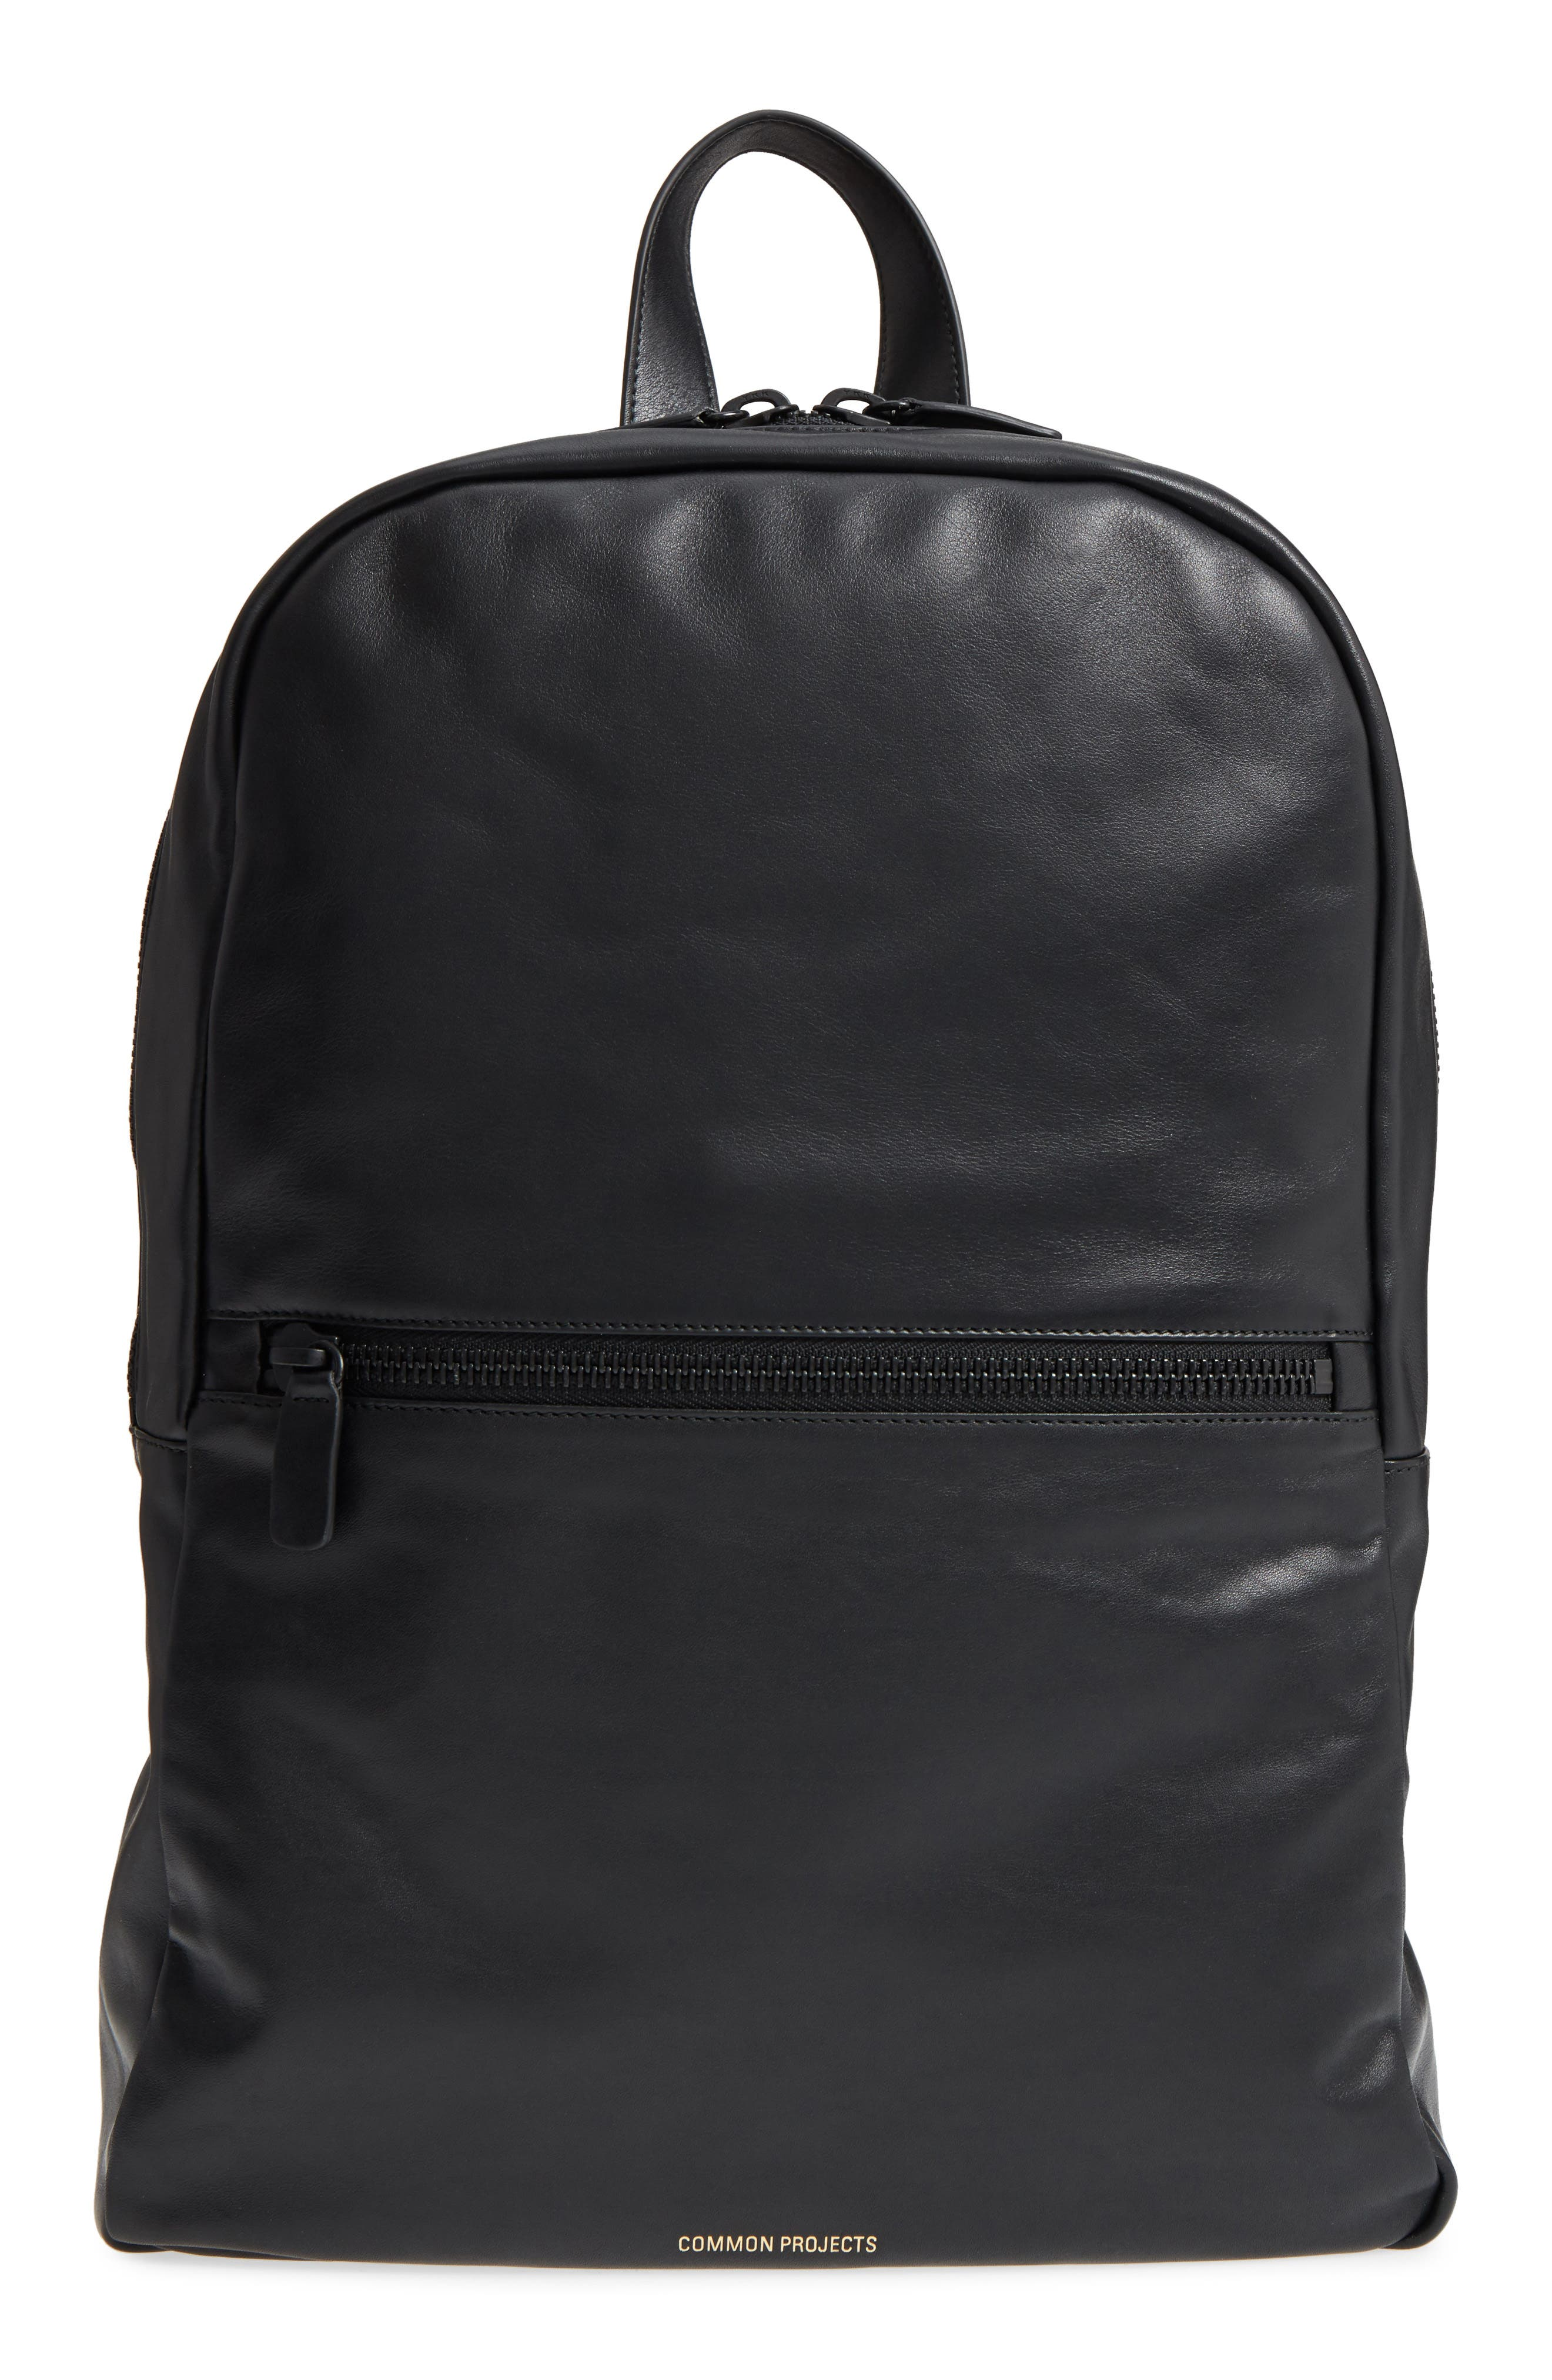 Soft Leather Backpack,                             Main thumbnail 1, color,                             BLACK